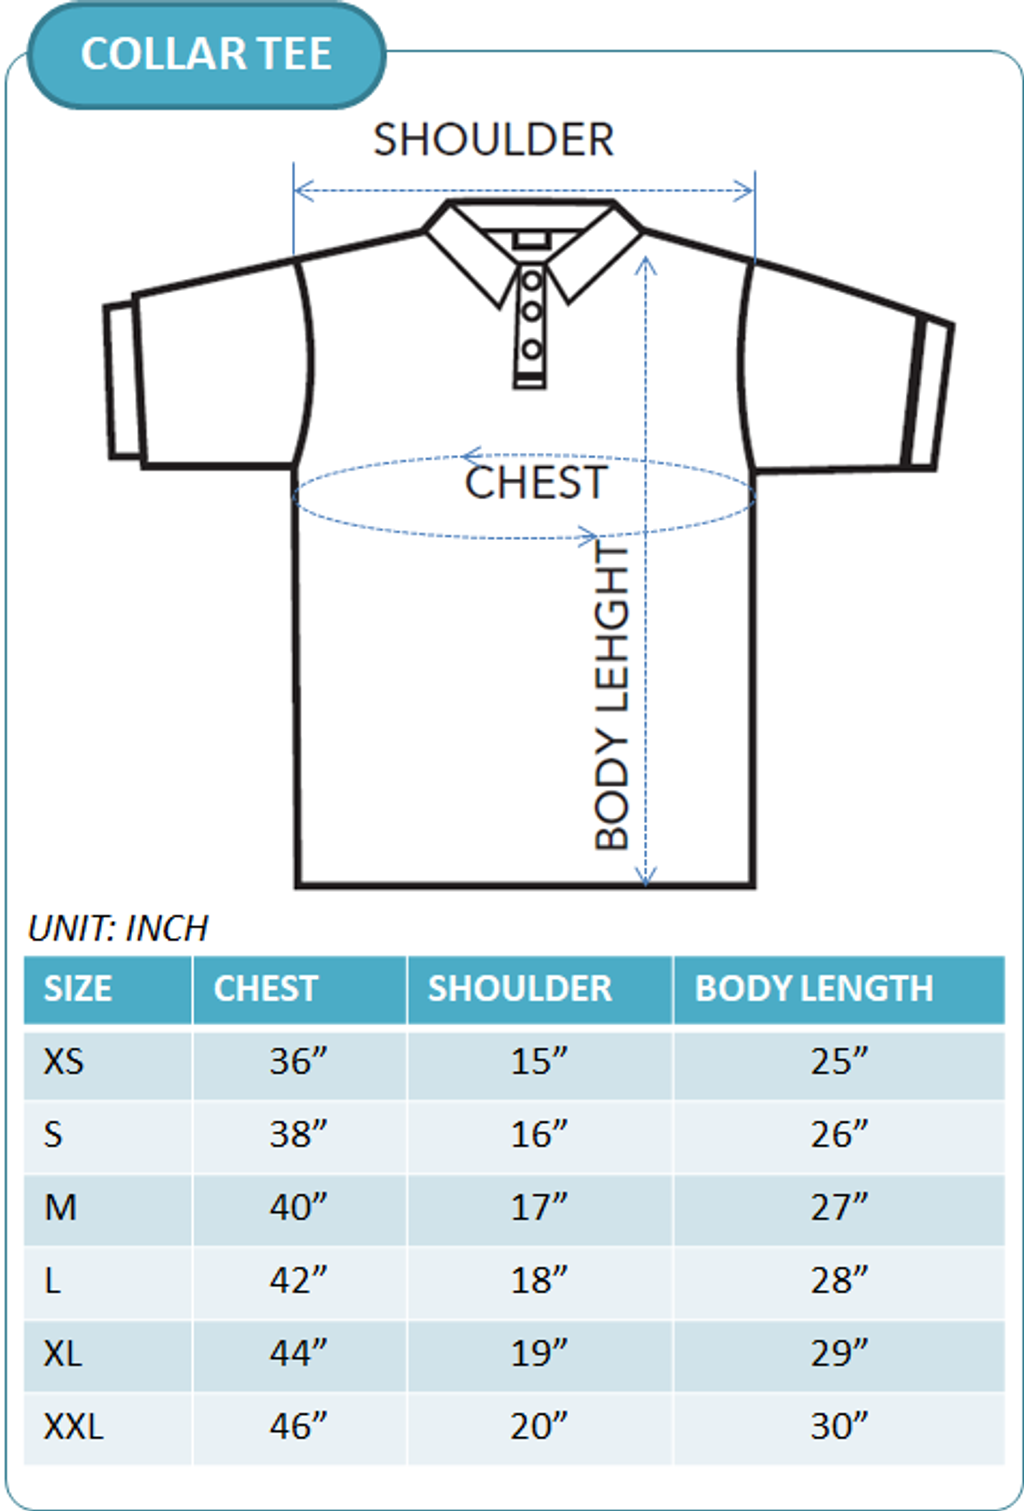 Collar-Tee-size-table.png